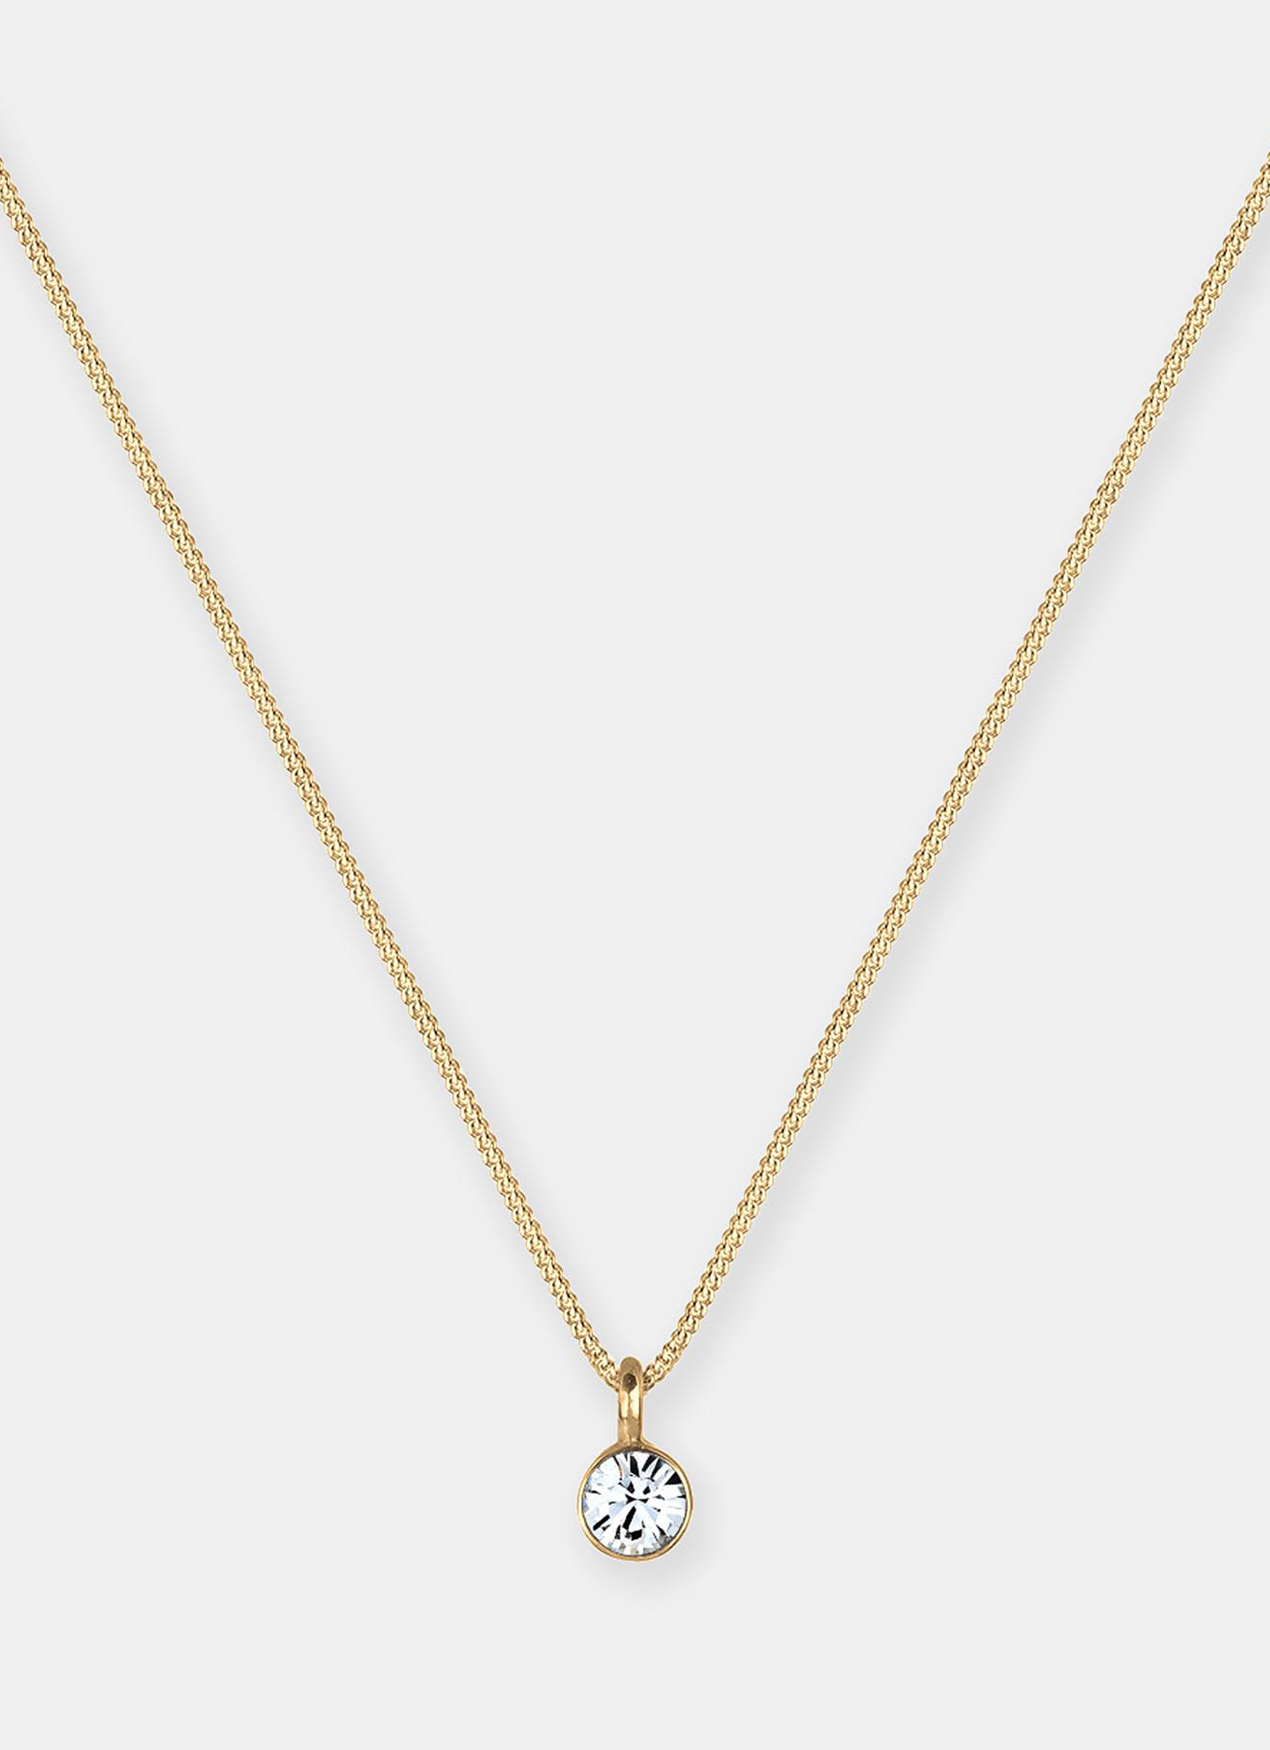 Elli Germany Solitaire Swarovski Crystal Necklace - Gold